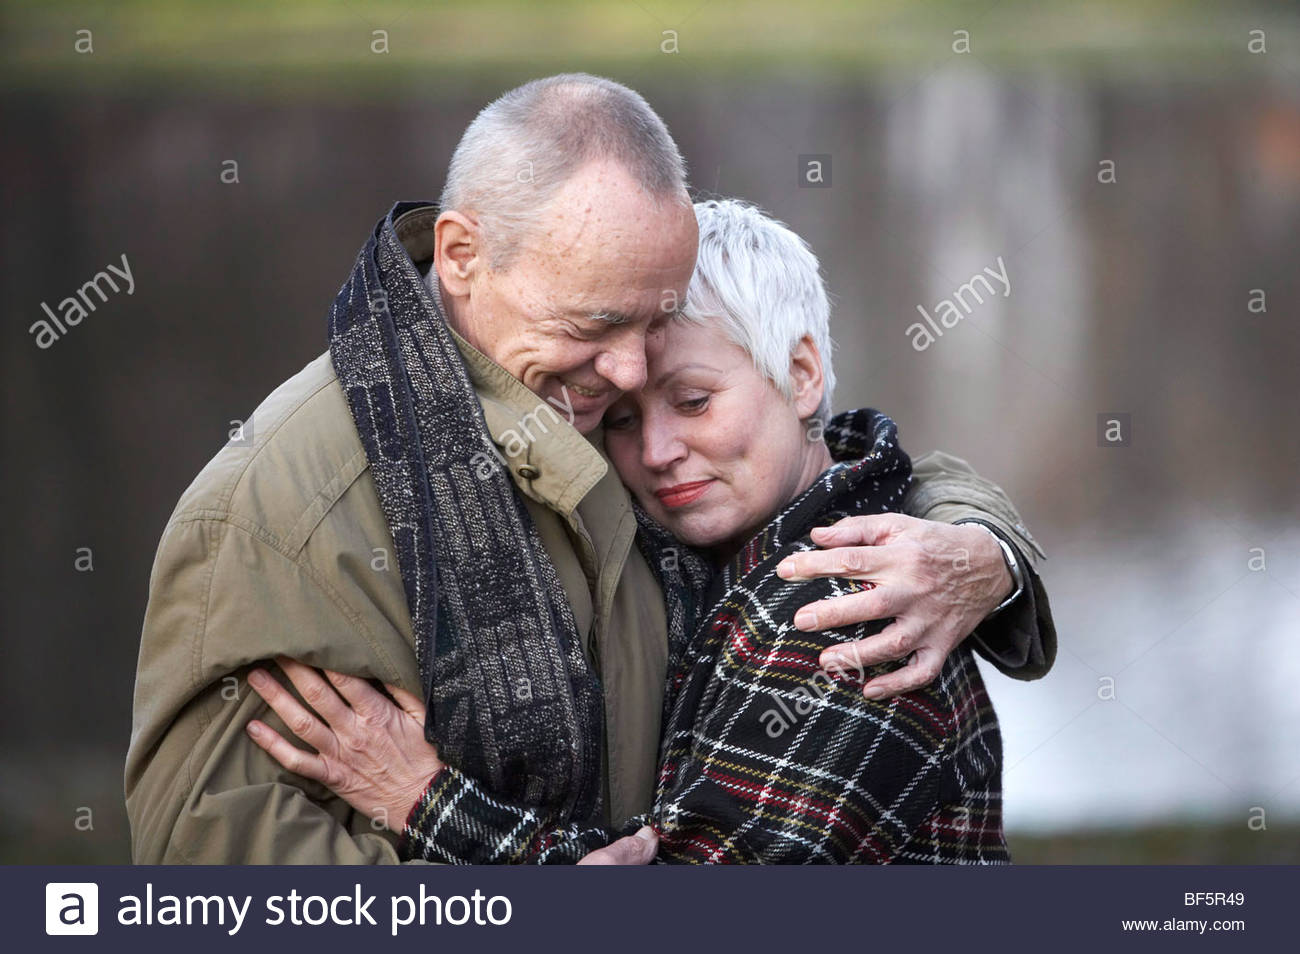 an ellderly couple is hugging each other dearly in a park